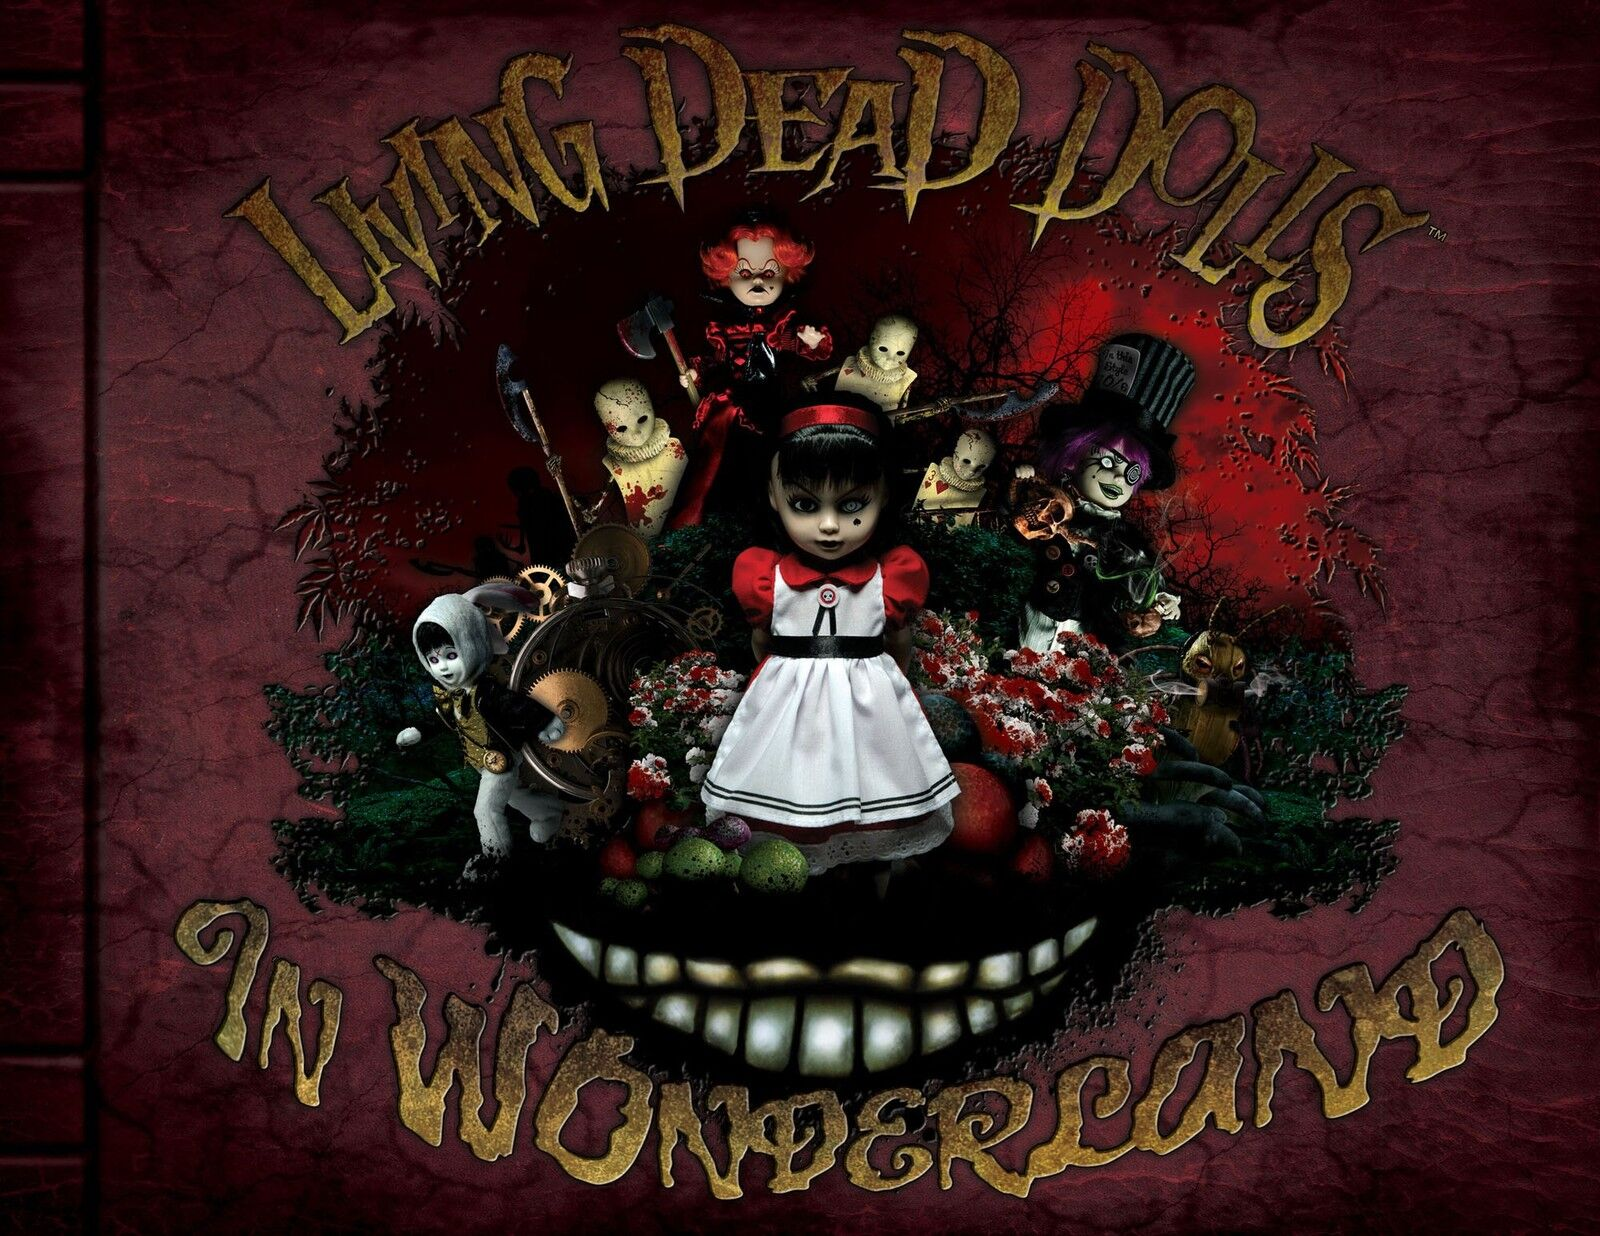 Living Dead Dolls in Wonderland Hardcover Book Limited Edition Libro Mezco Rare